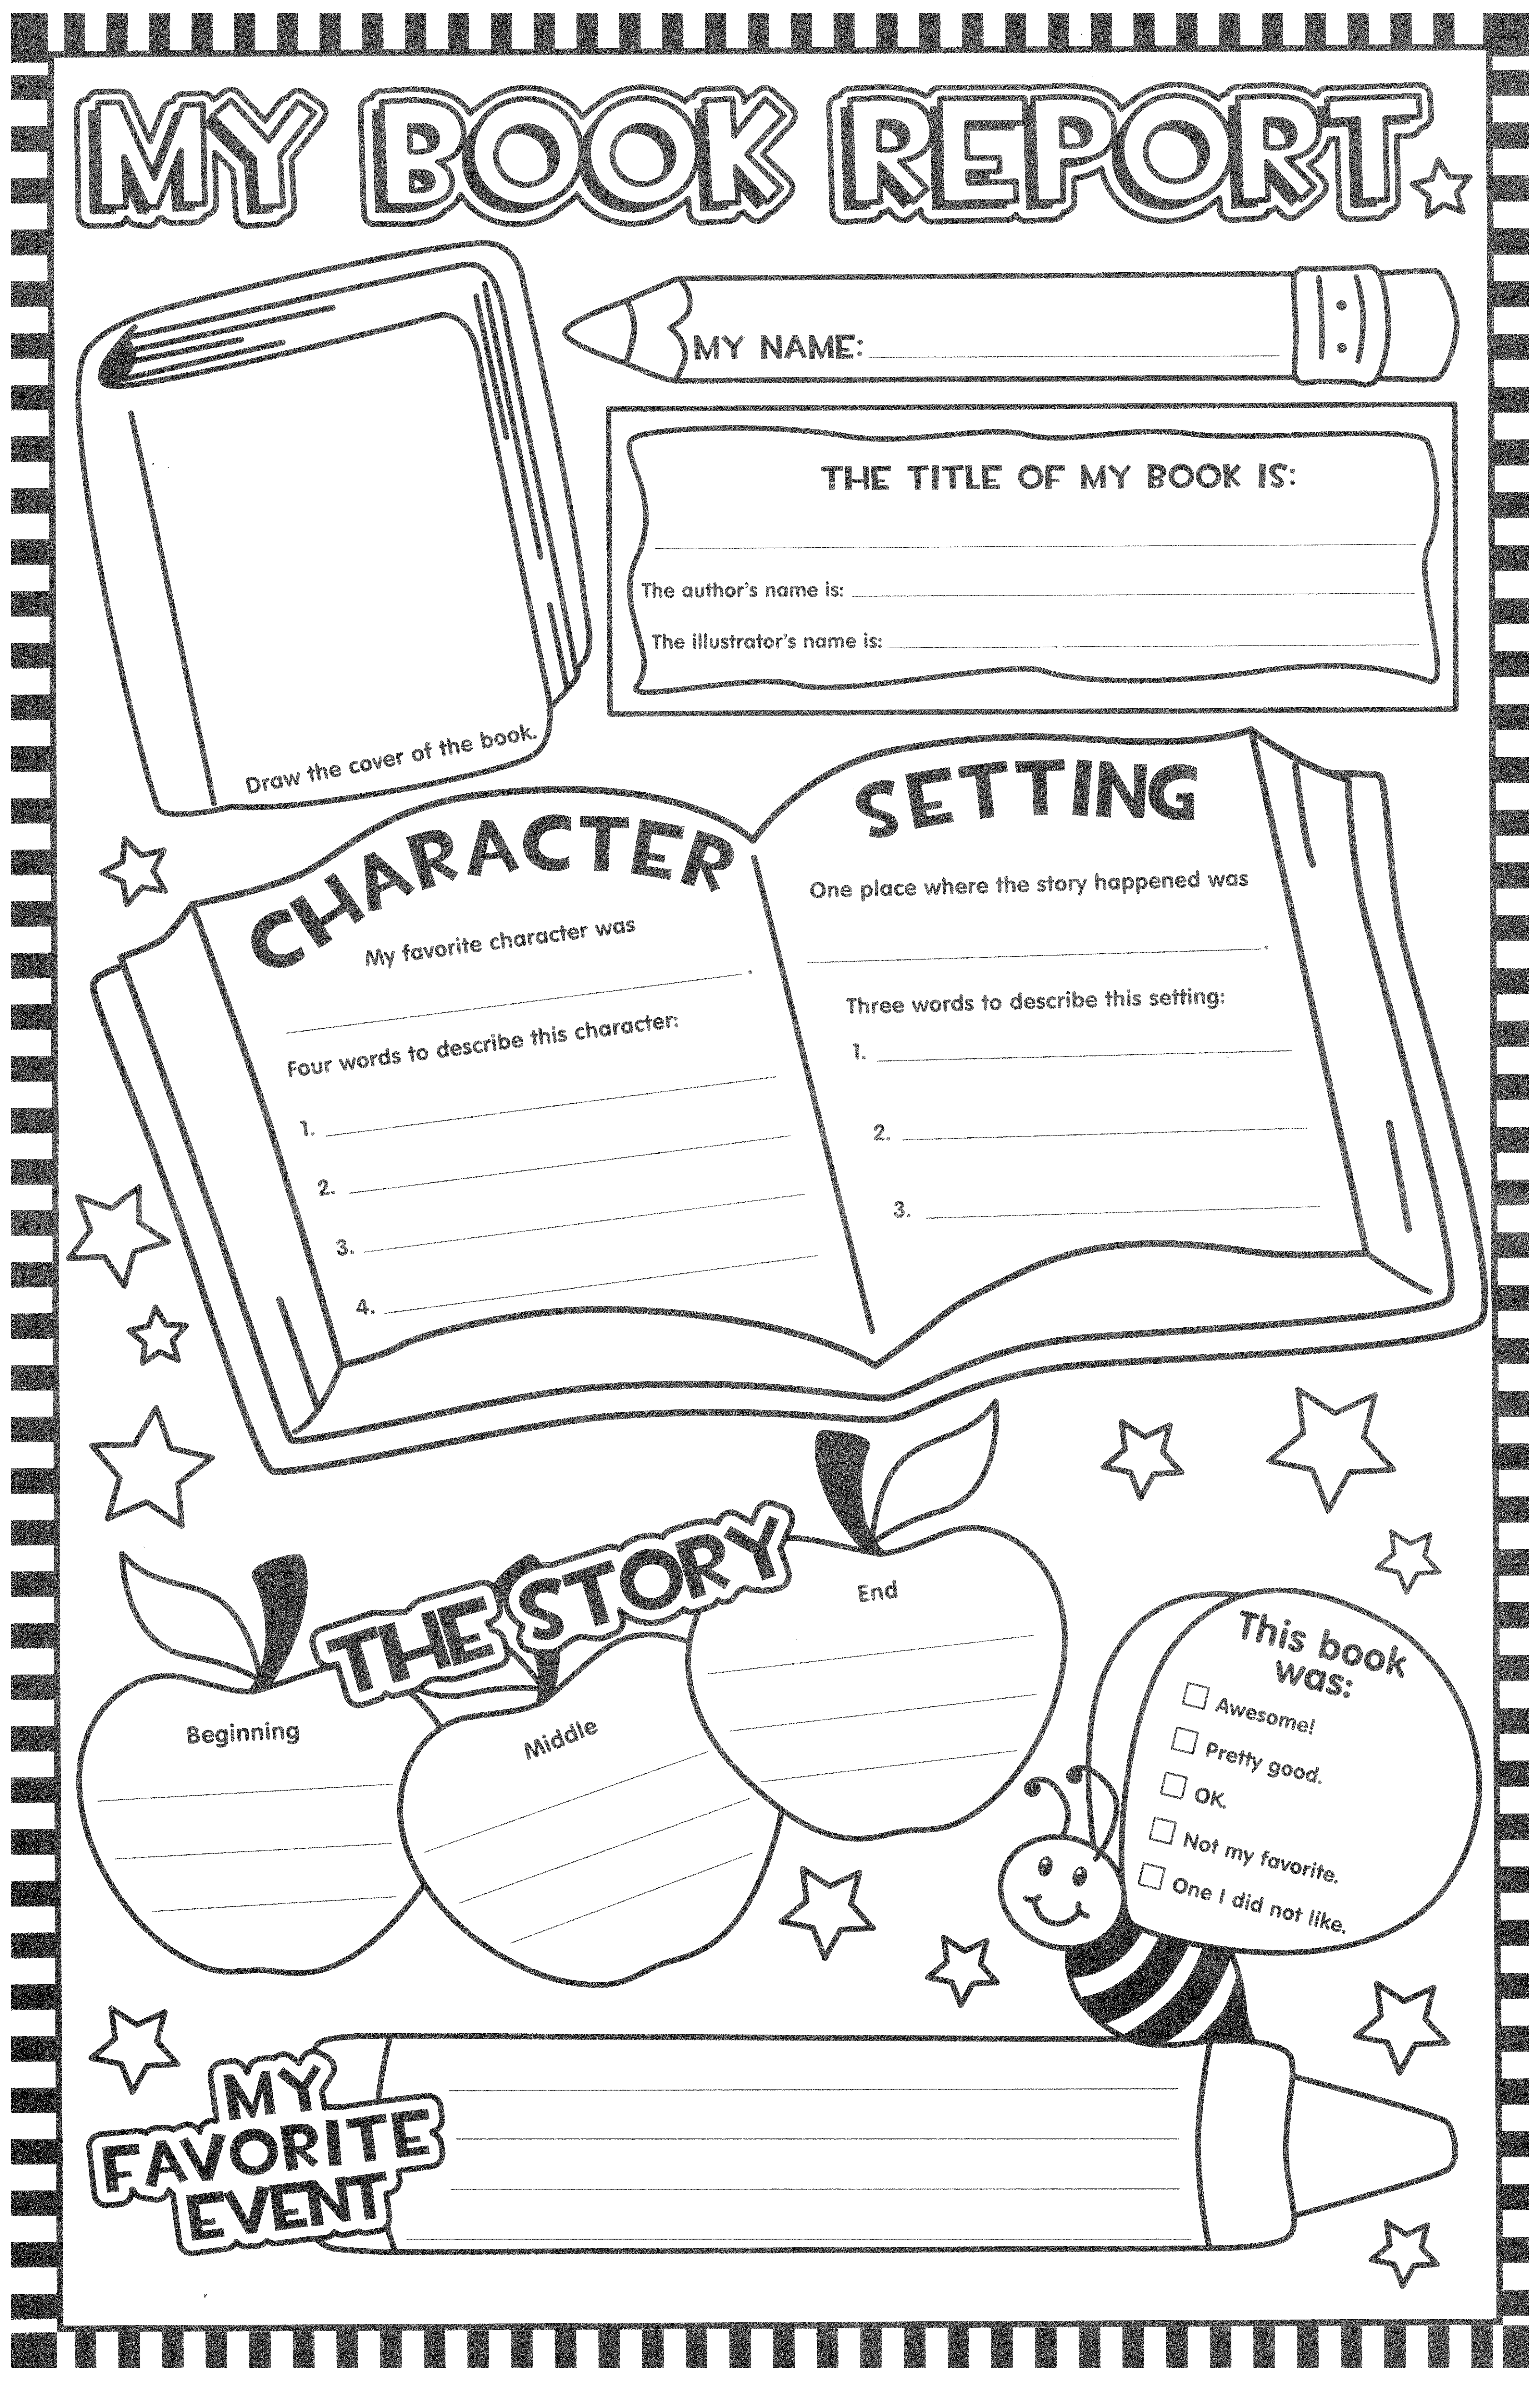 Book Report Poster (Updated) | Squarehead Teachers - Book Report Template Free Printable